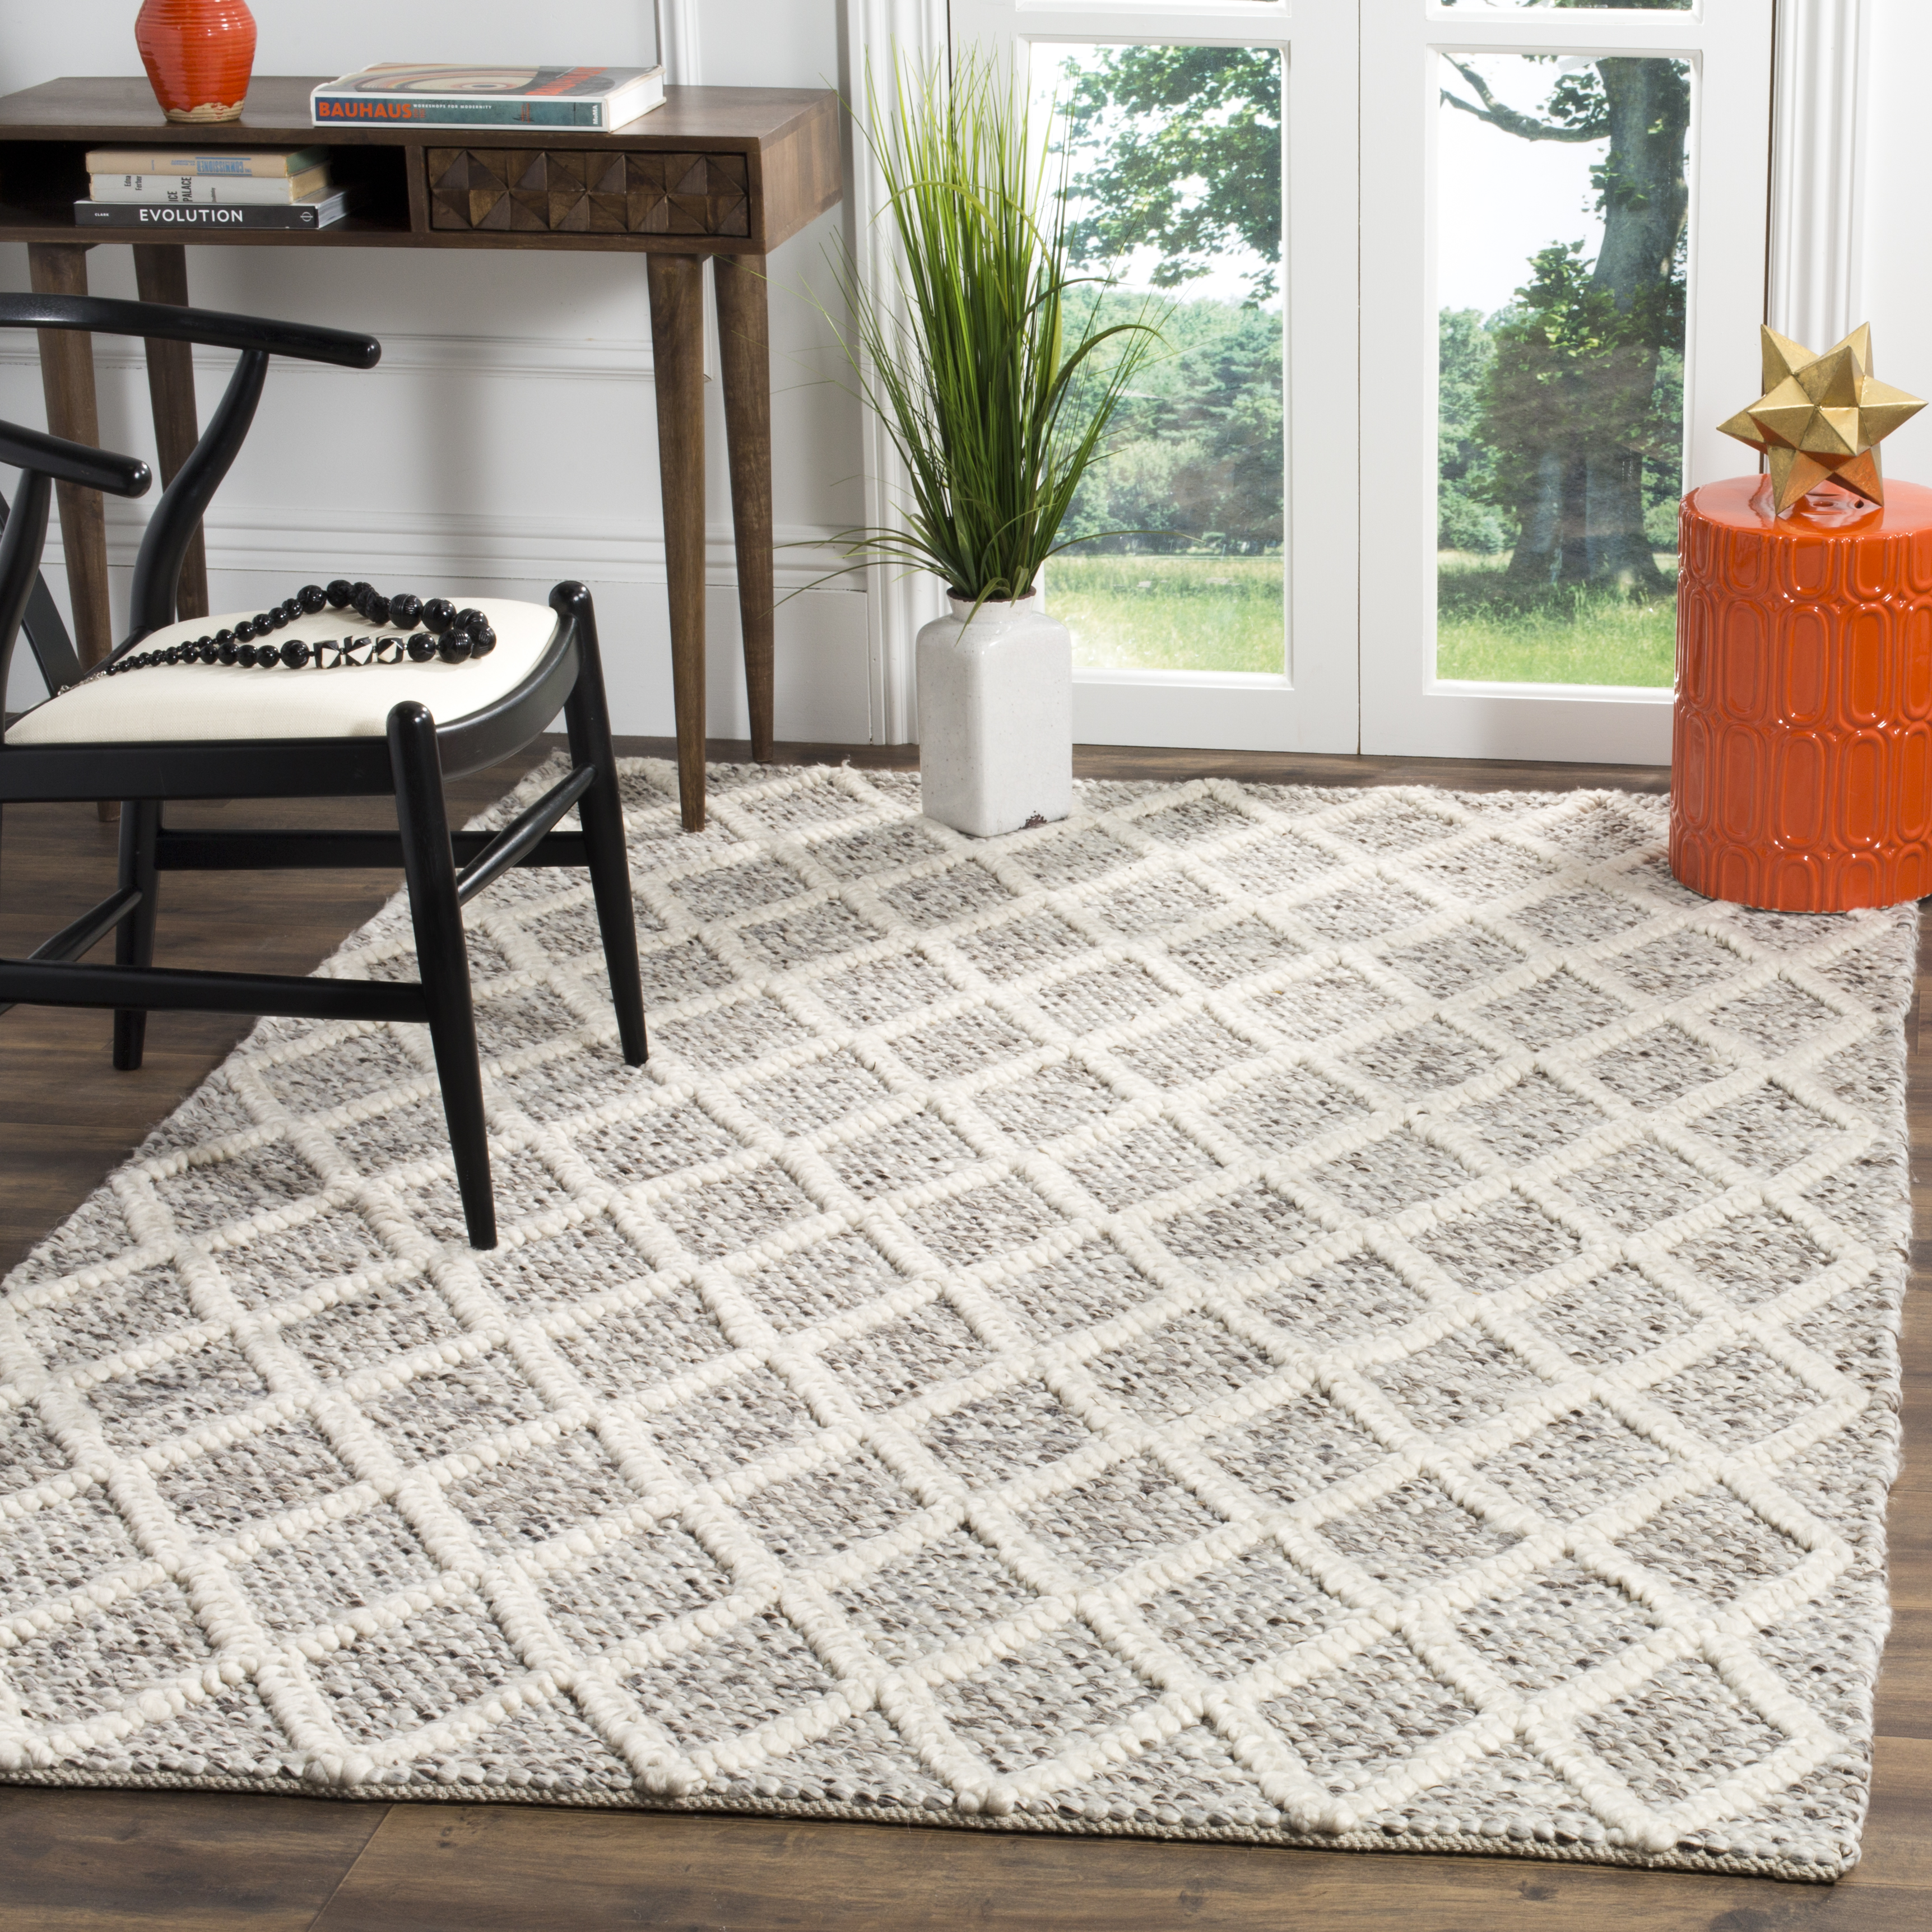 Chipley 711 6' X 6' Square Ivory Polyester Rug